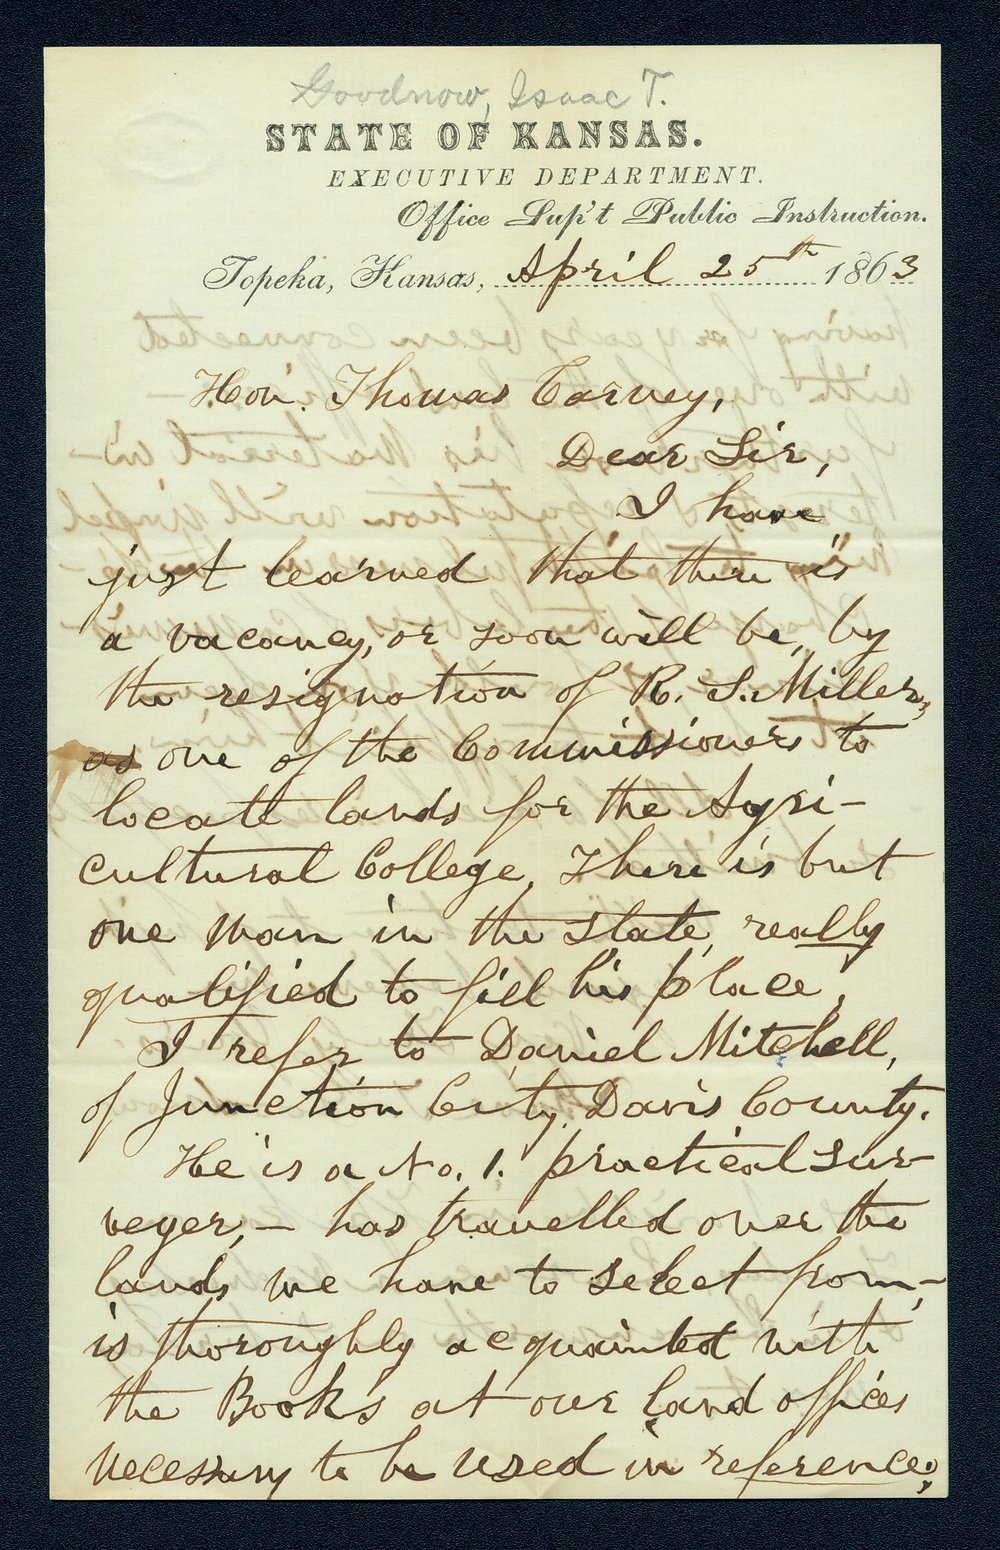 Governor Thomas Carney college and university lands, 1863, correspondence - 4